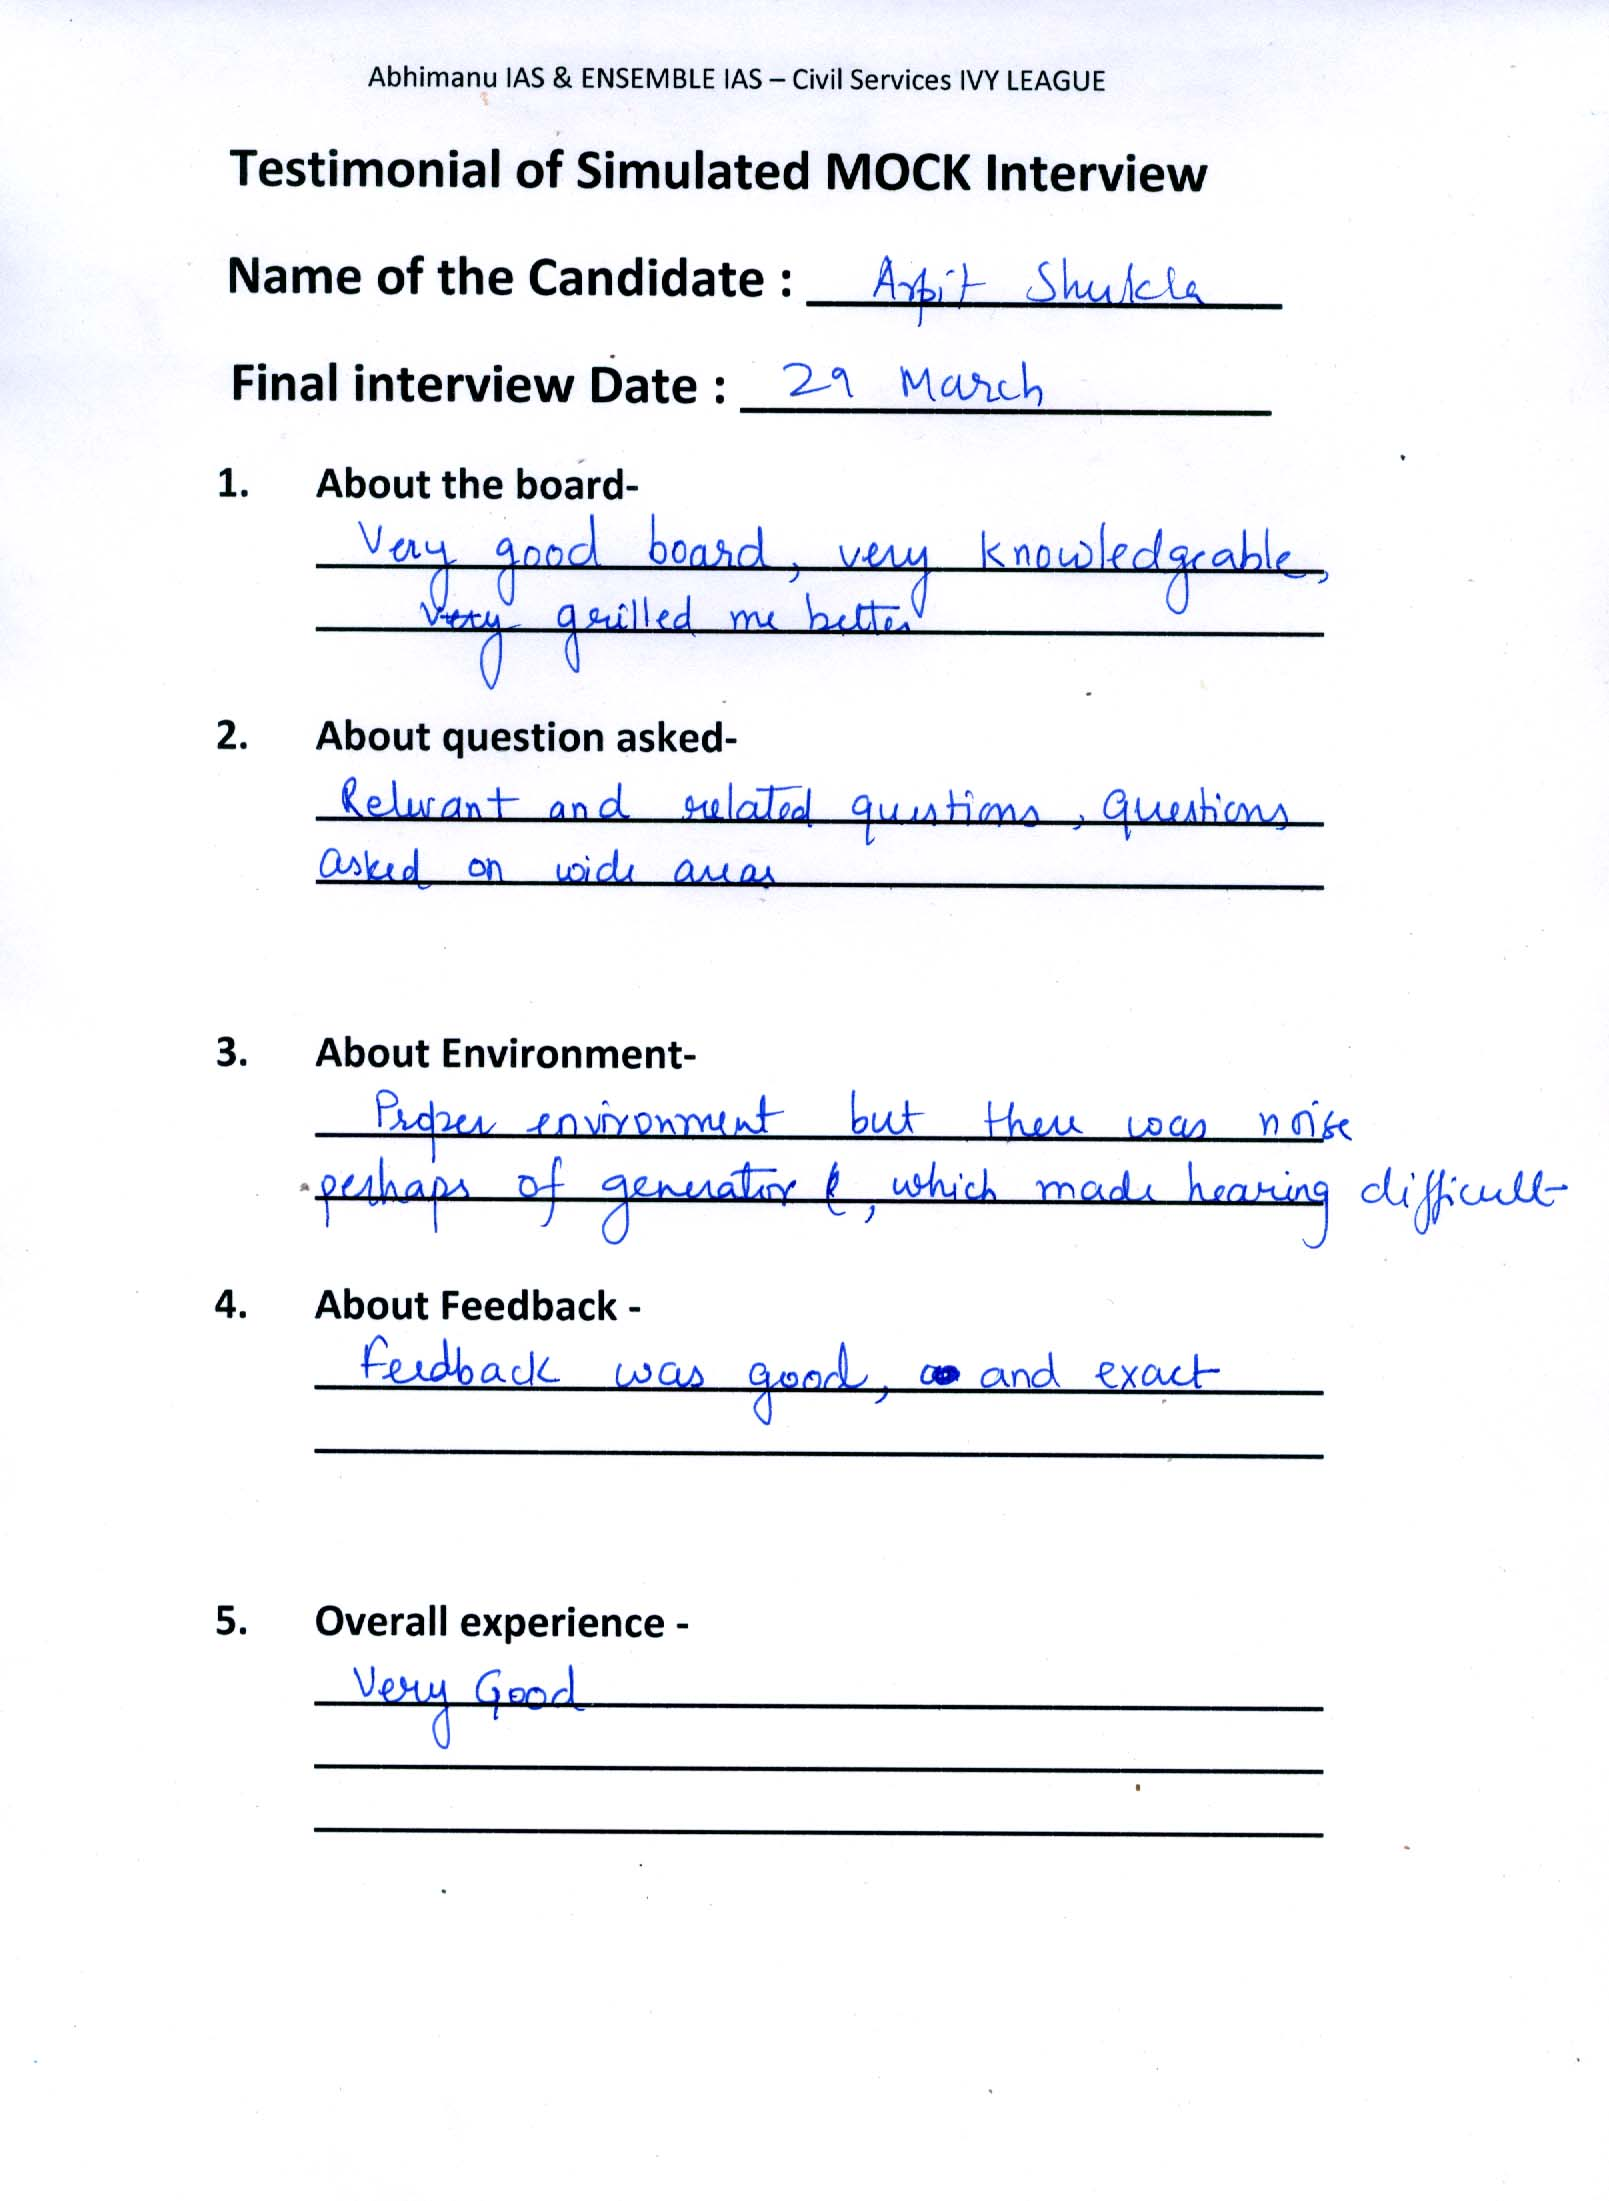 Interview Testimonial By- Arpit shukla